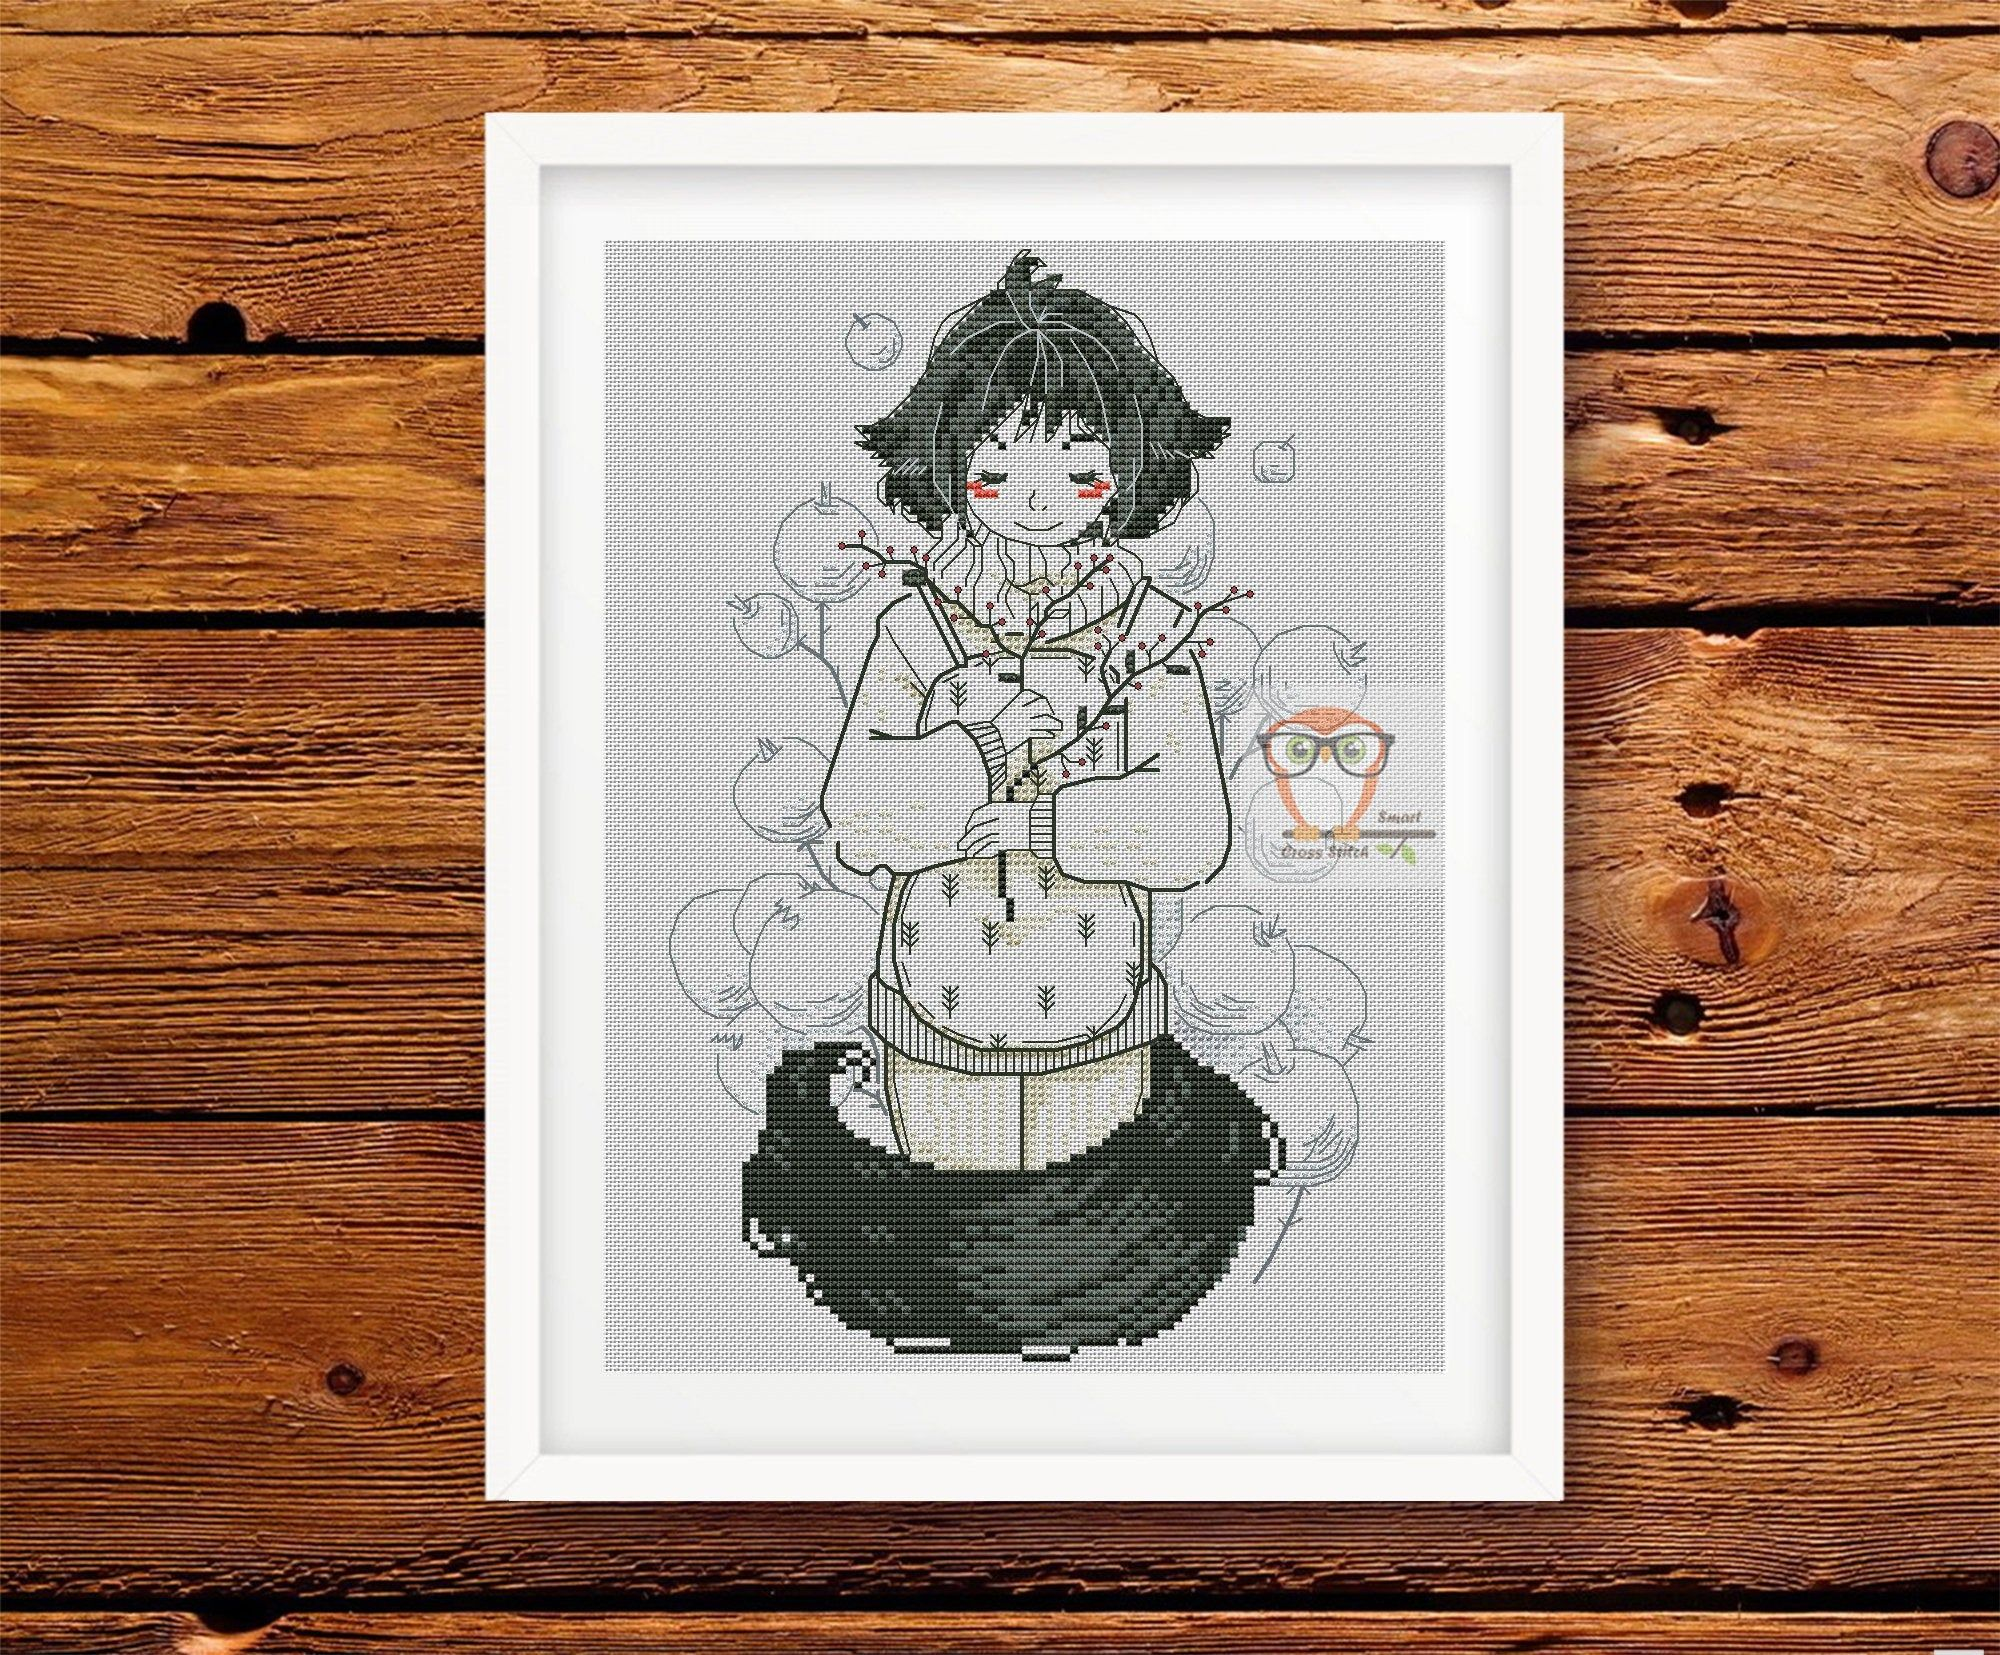 42+ Anime girl embroidery designs inspirations